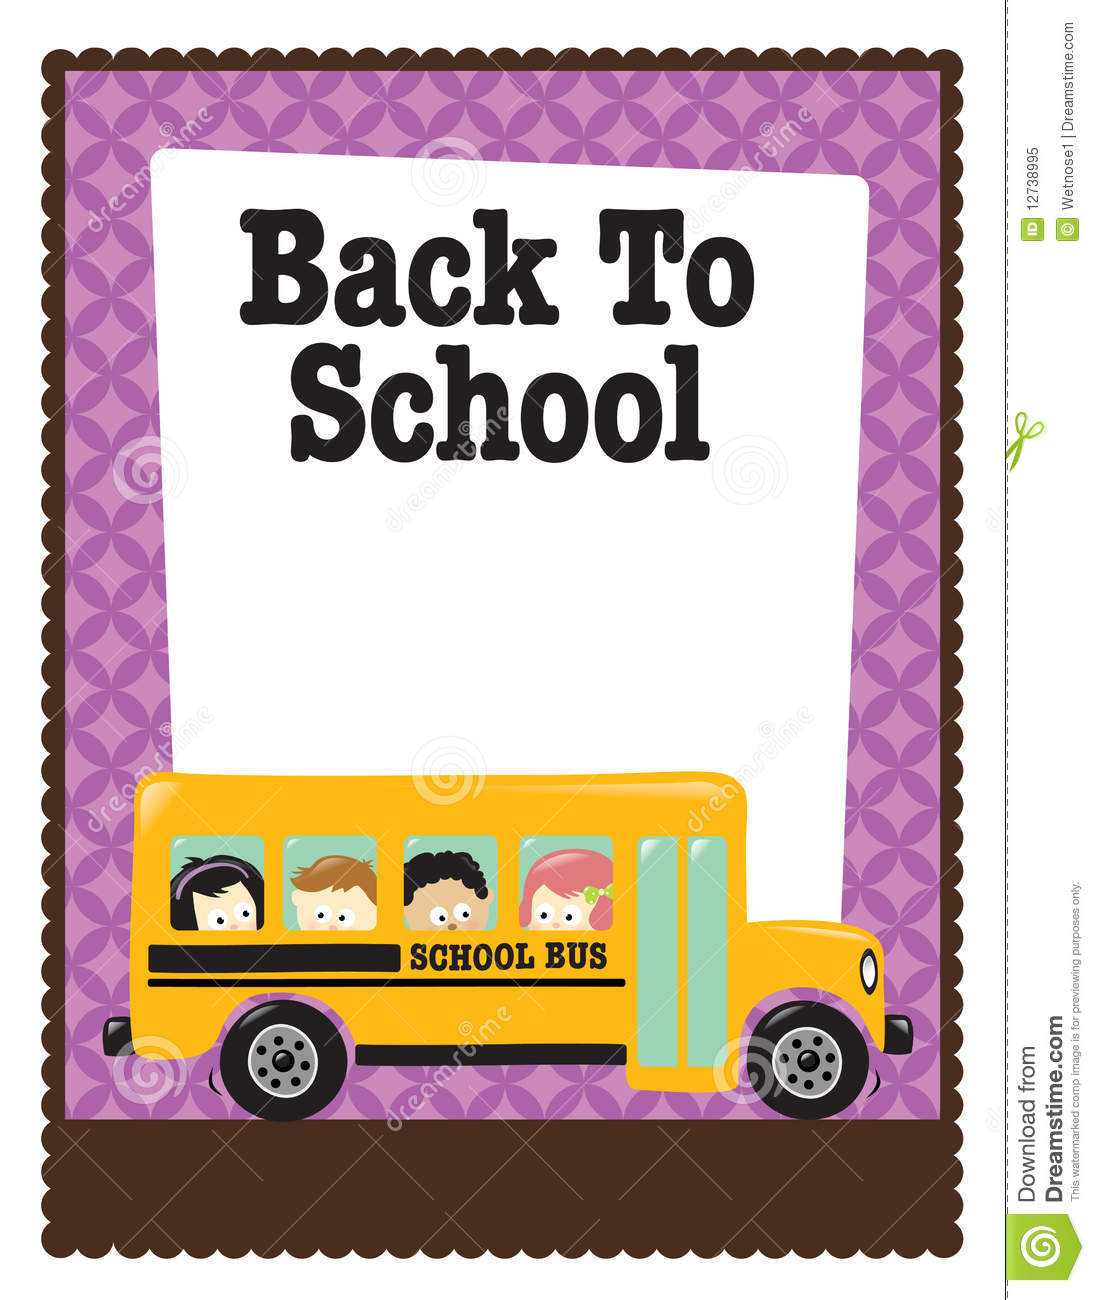 8.5x11 School Flyer W/ Bus And Kids Royalty Free Stock